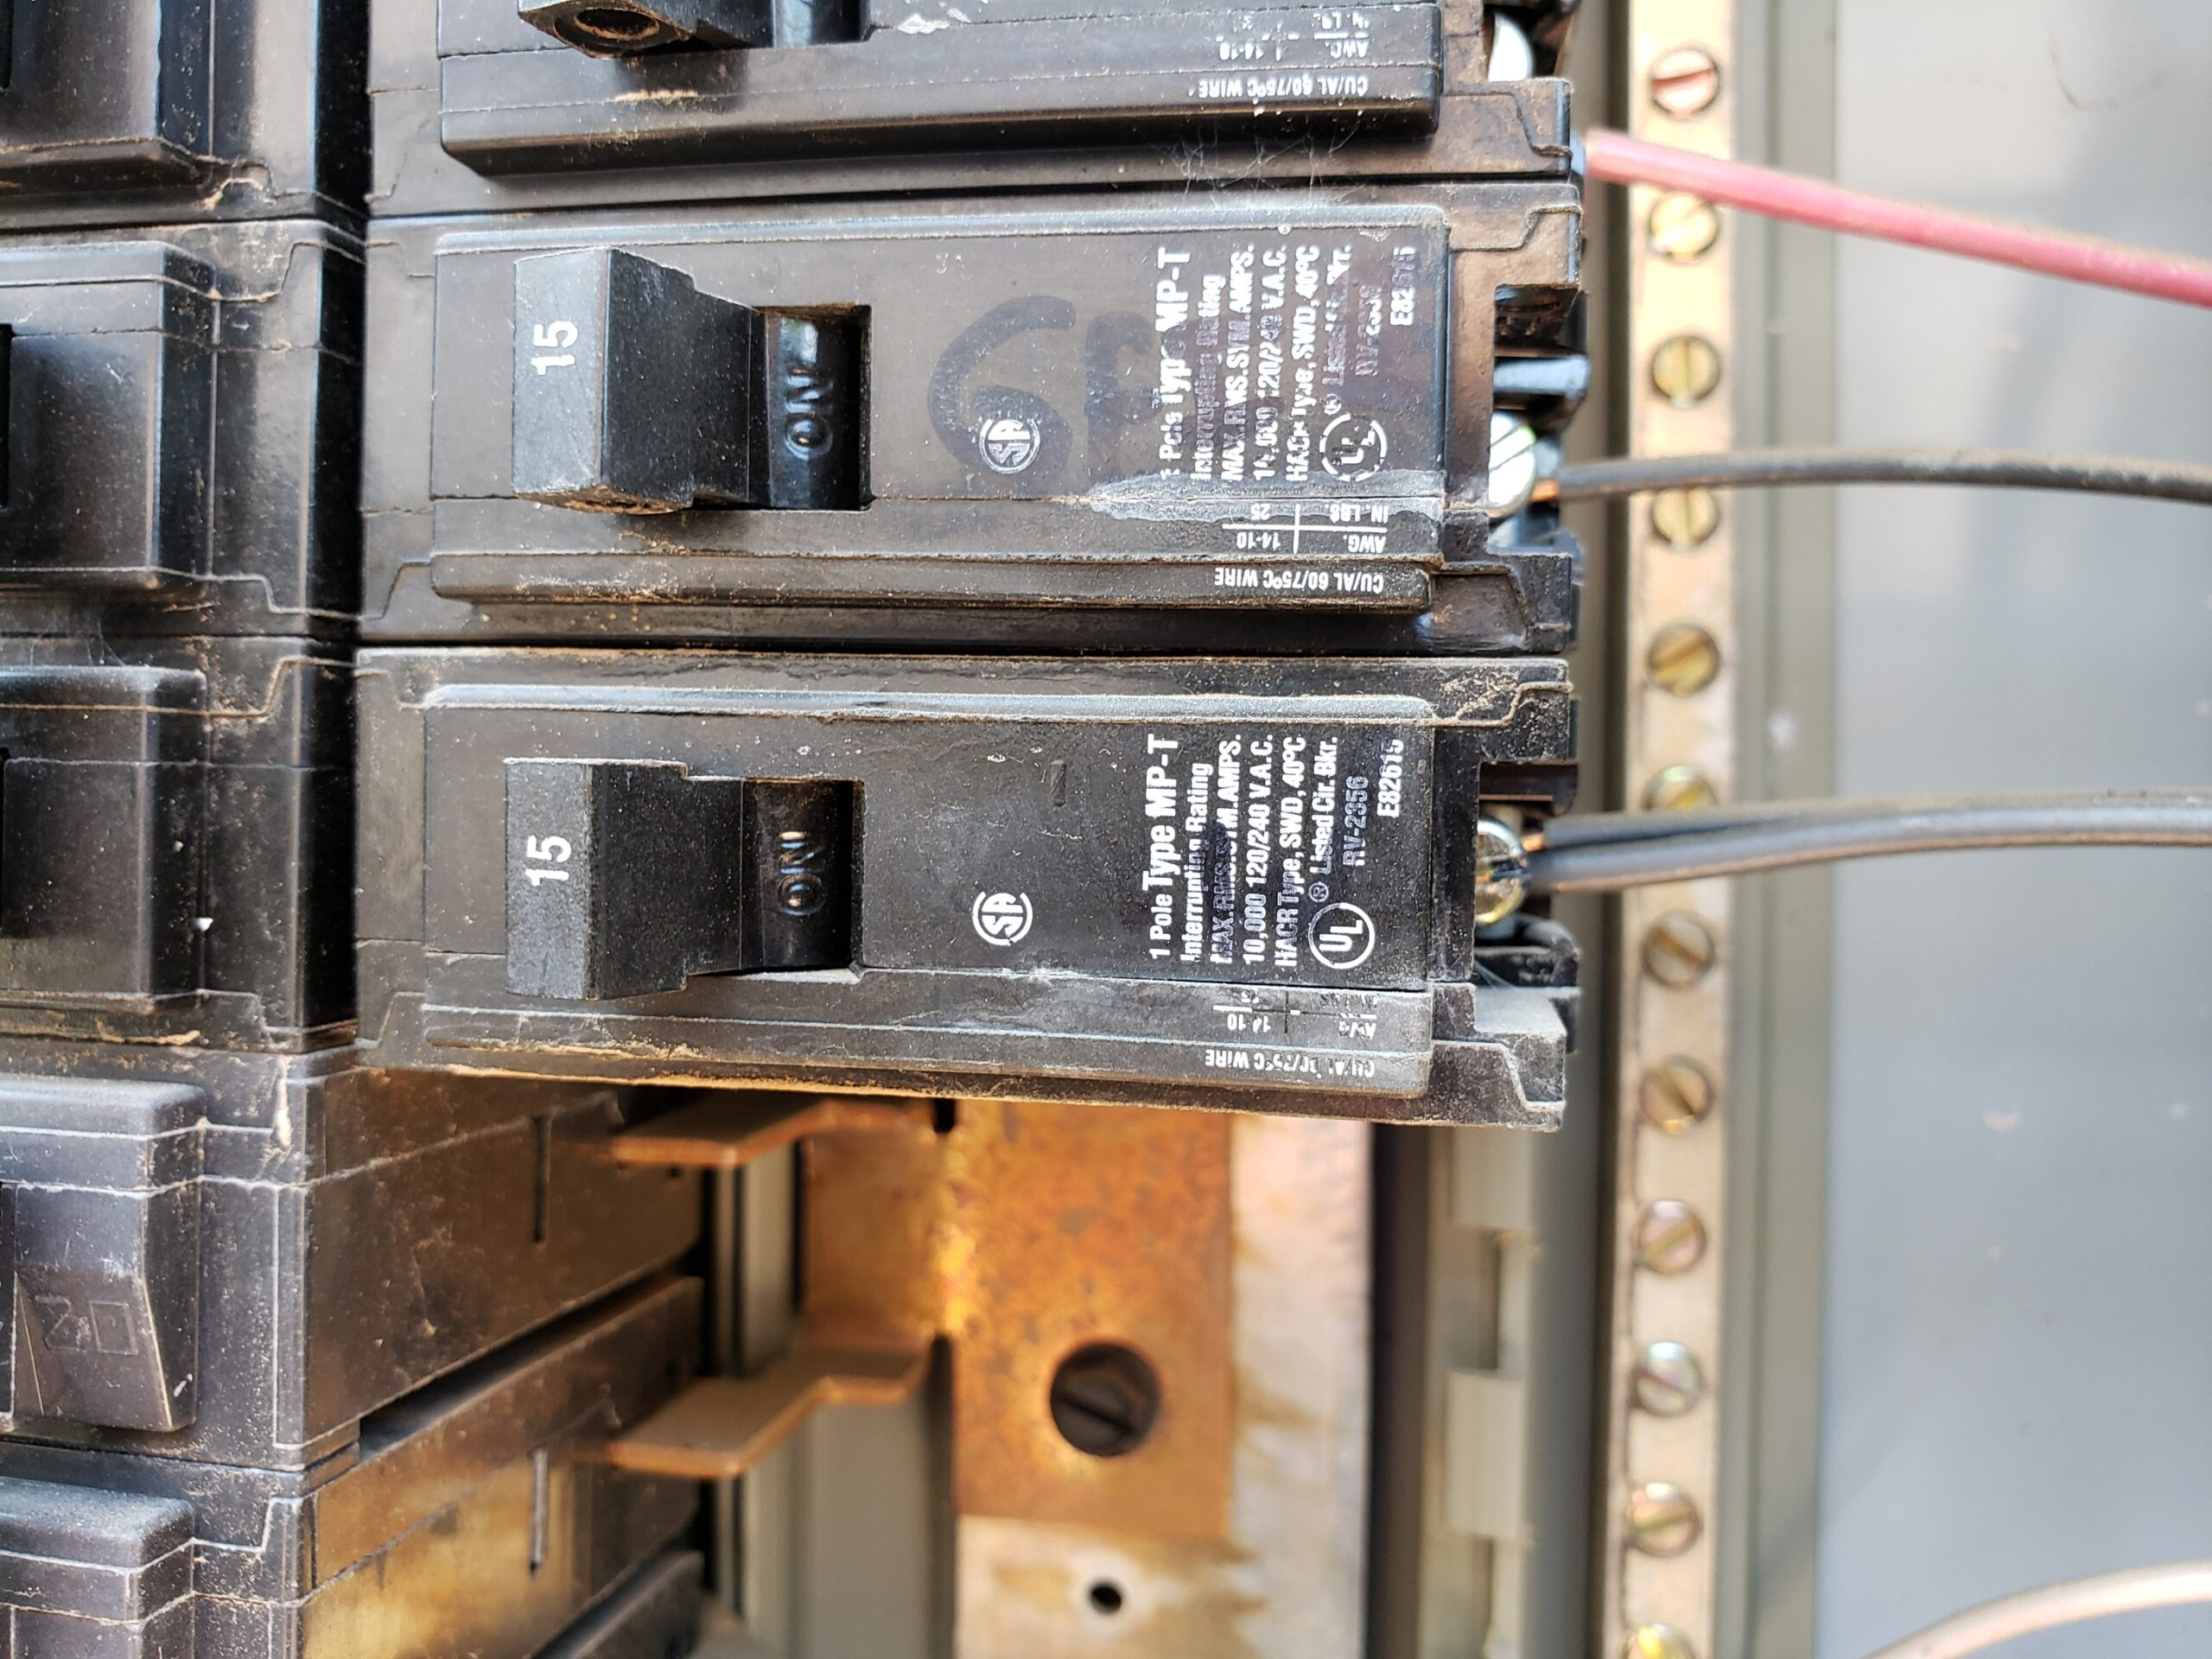 Double tap at breaker in main electrical service panel